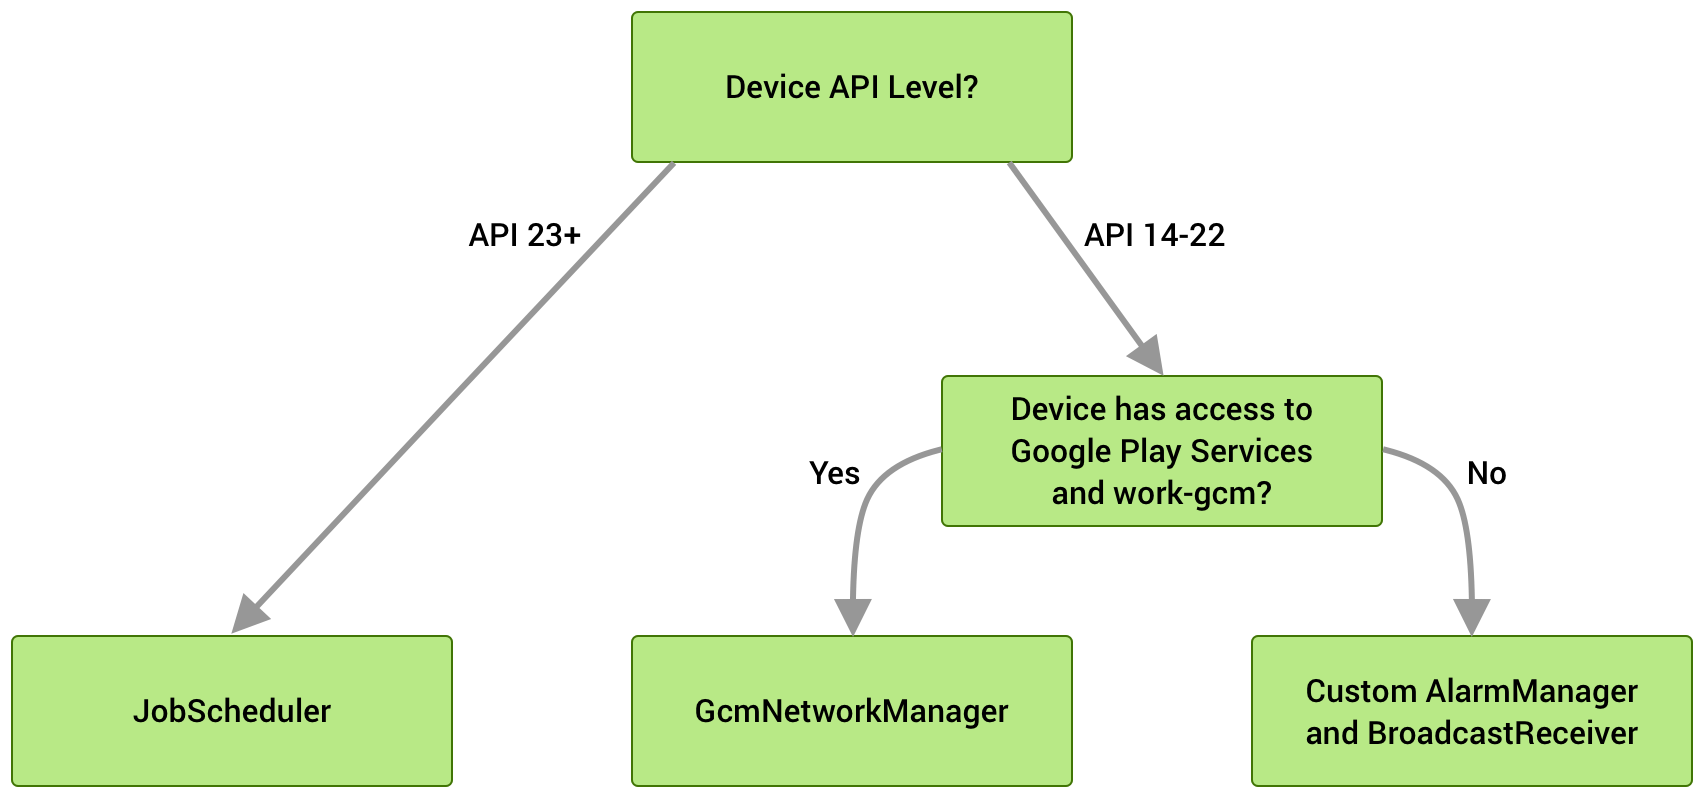 If the device is running on API Level 23 or higher, JobScheduler is used. On API Levels 14-22, GcmNetworkManager is chosen if it's available, otherwise, a custom AlarmManager and BroadcastReciever implementation is used as a fallback.